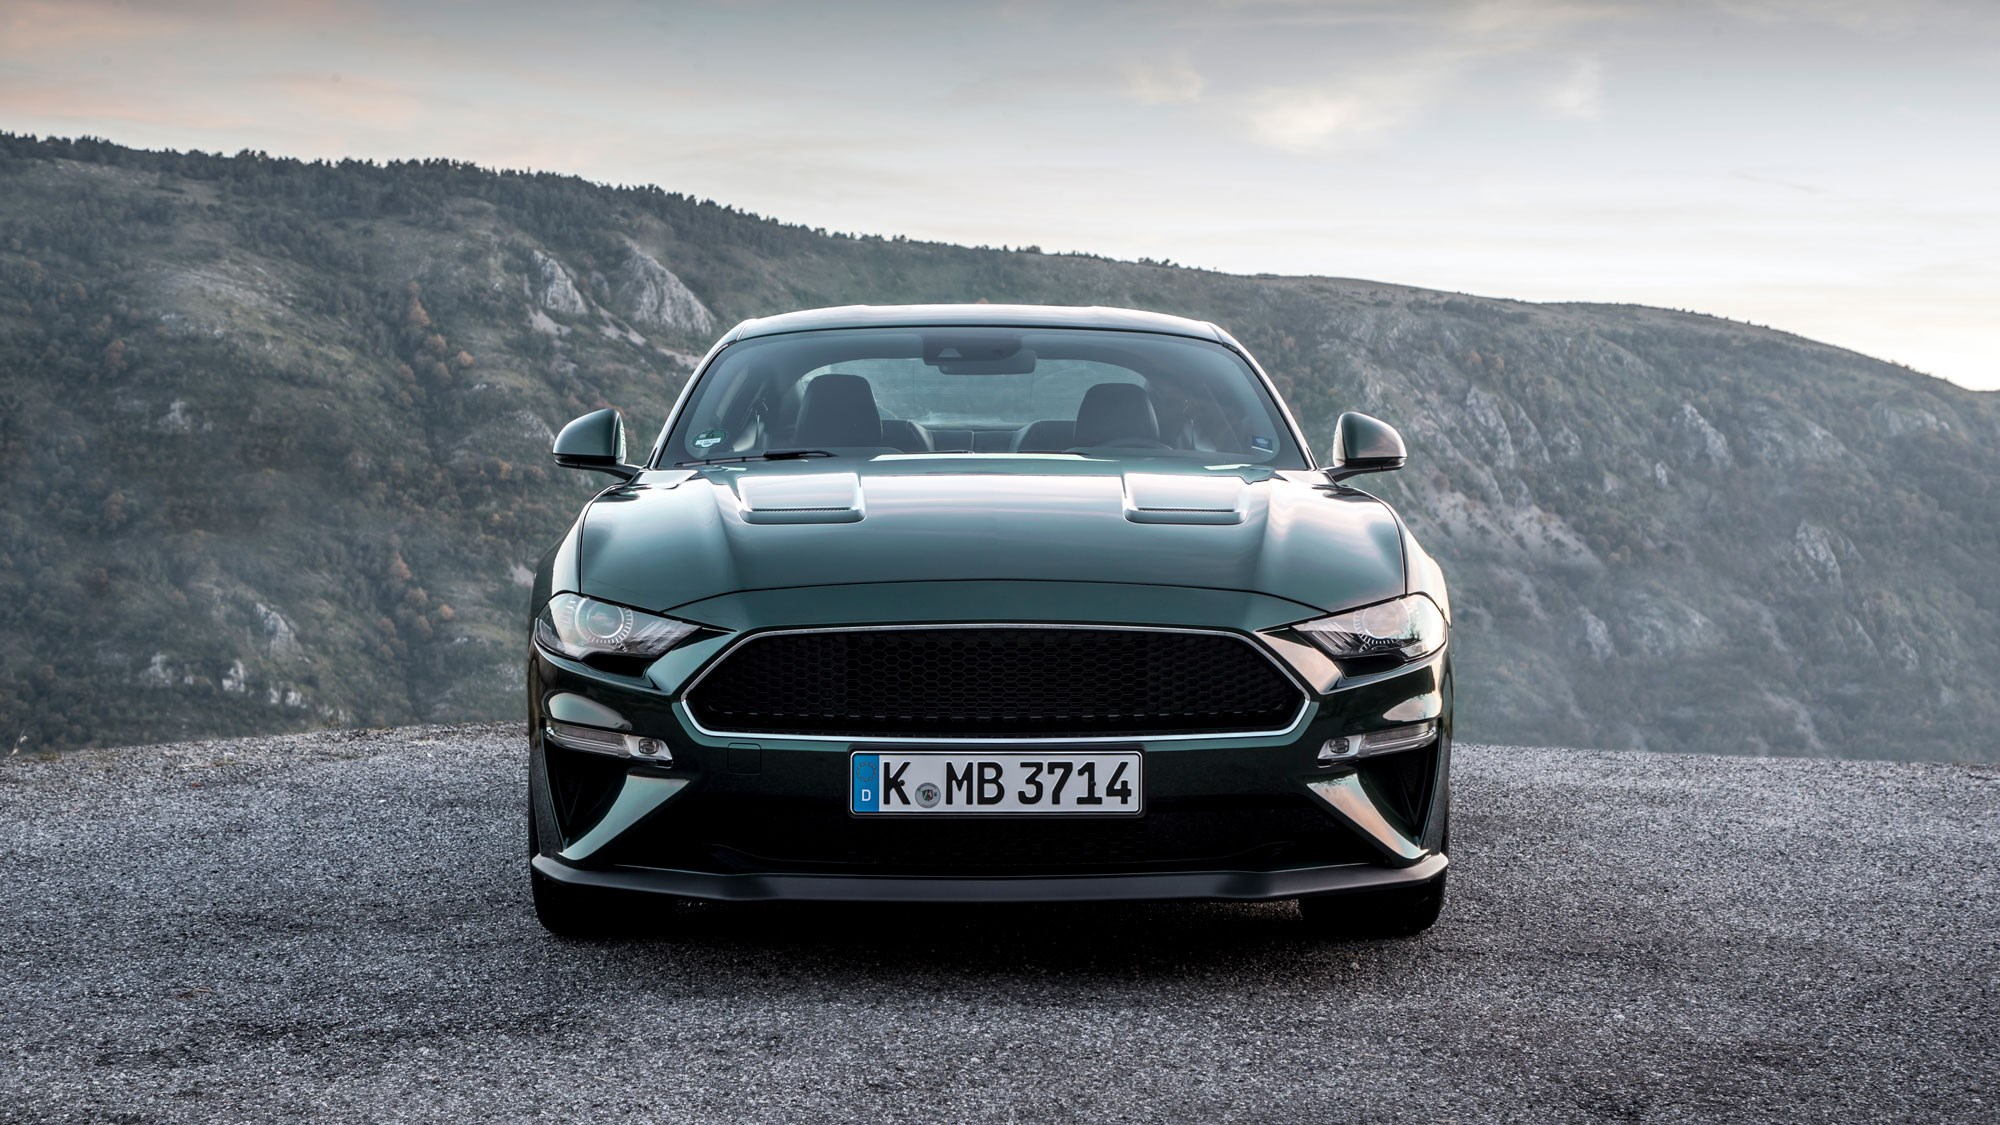 2019 Ford Mustang Sports Car The Bullitt Is Back >> Ford Mustang Bullitt 2019 Review A Little More Firepower Car